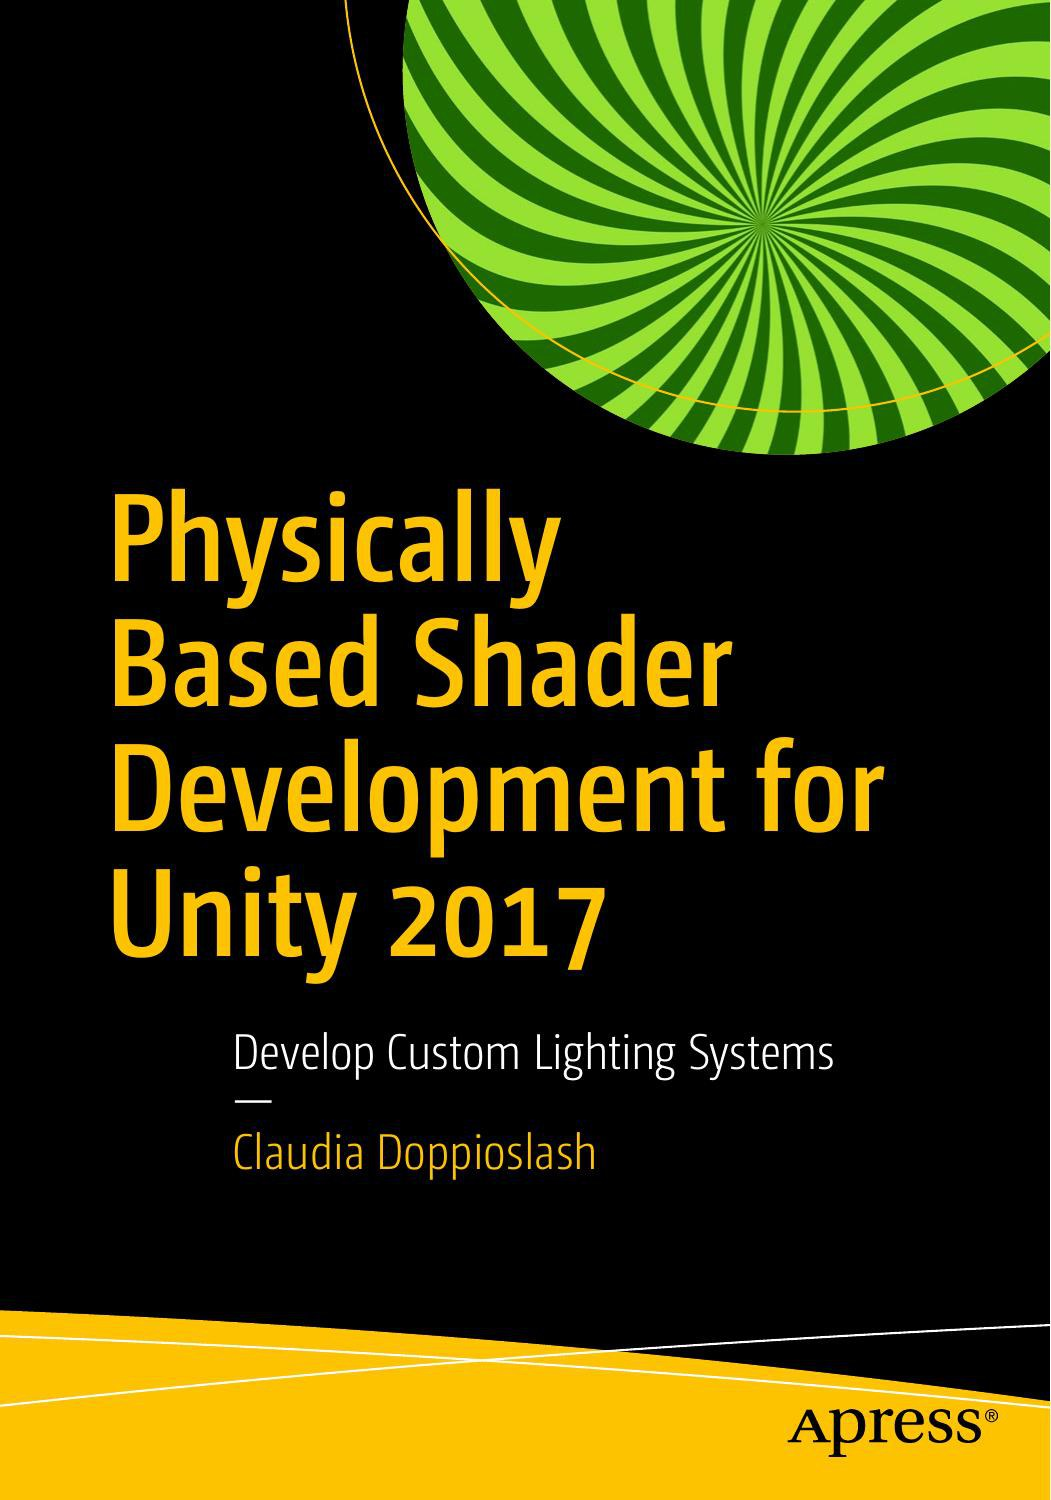 Physically Based Shader Development for Unity 2017